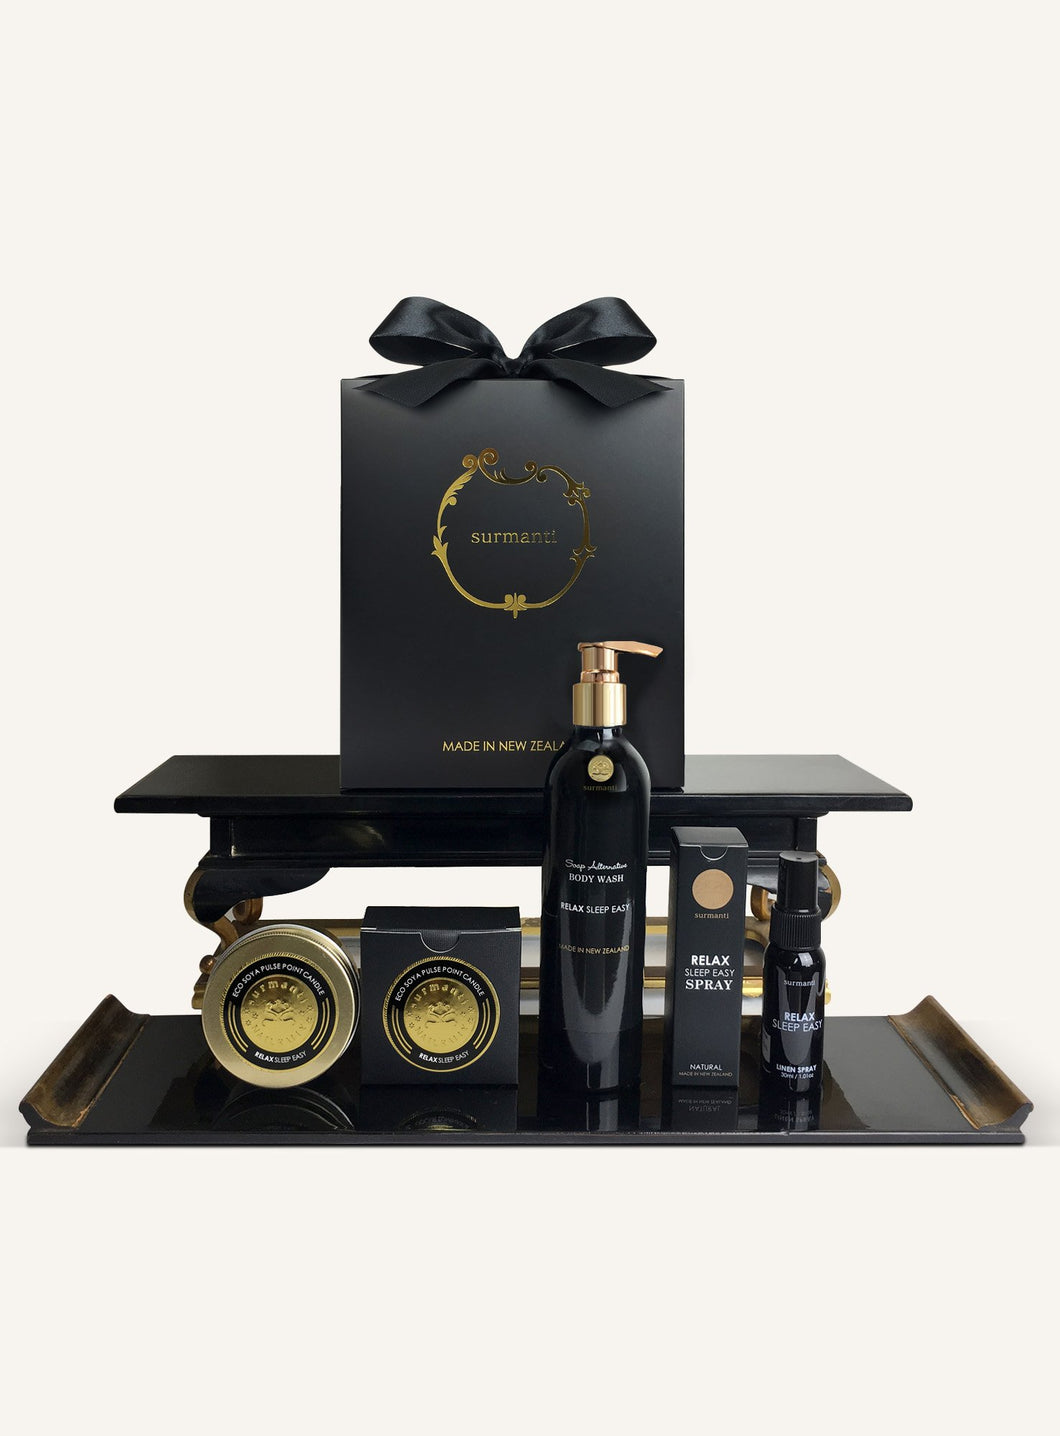 Luxury sleep gift box, Surmanti relax sleep easy gift